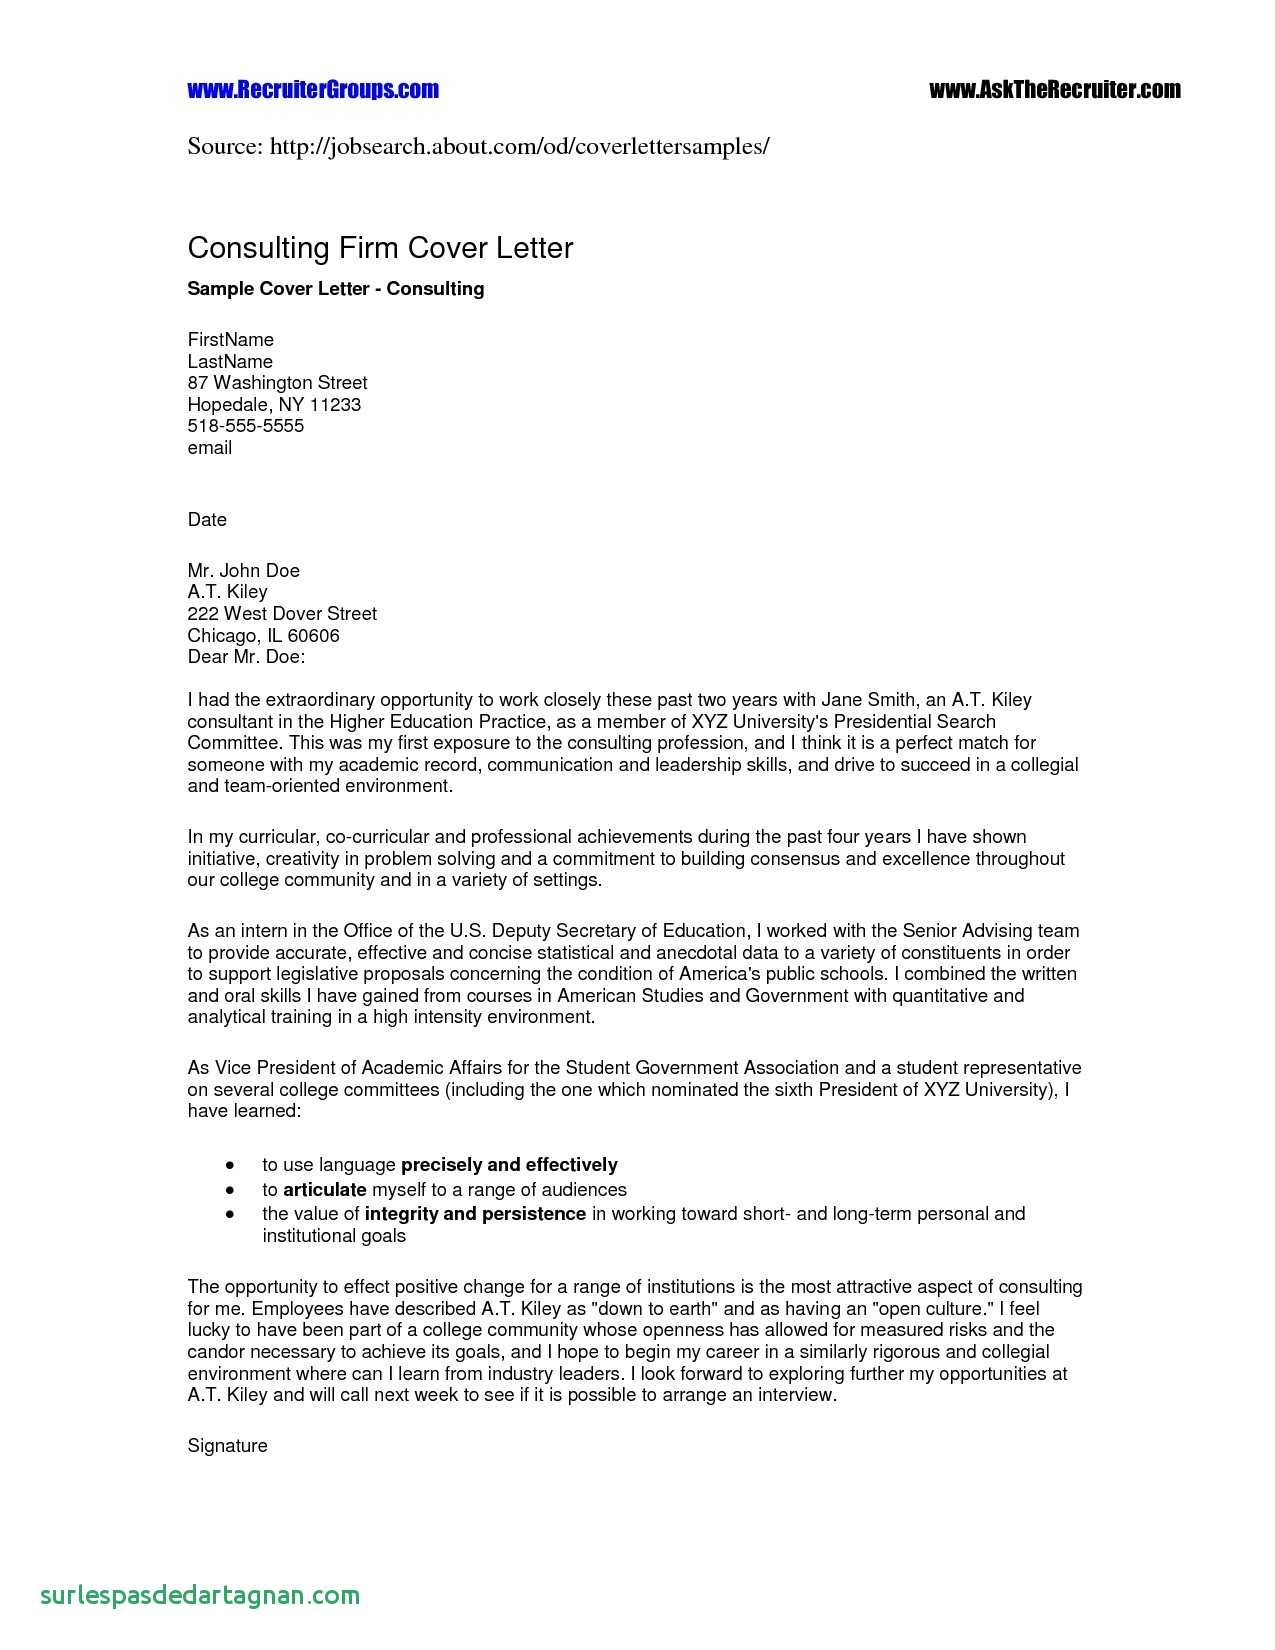 Google Cover Letter Template - Business Letter Template Google Docs Best Business Receipt Templates